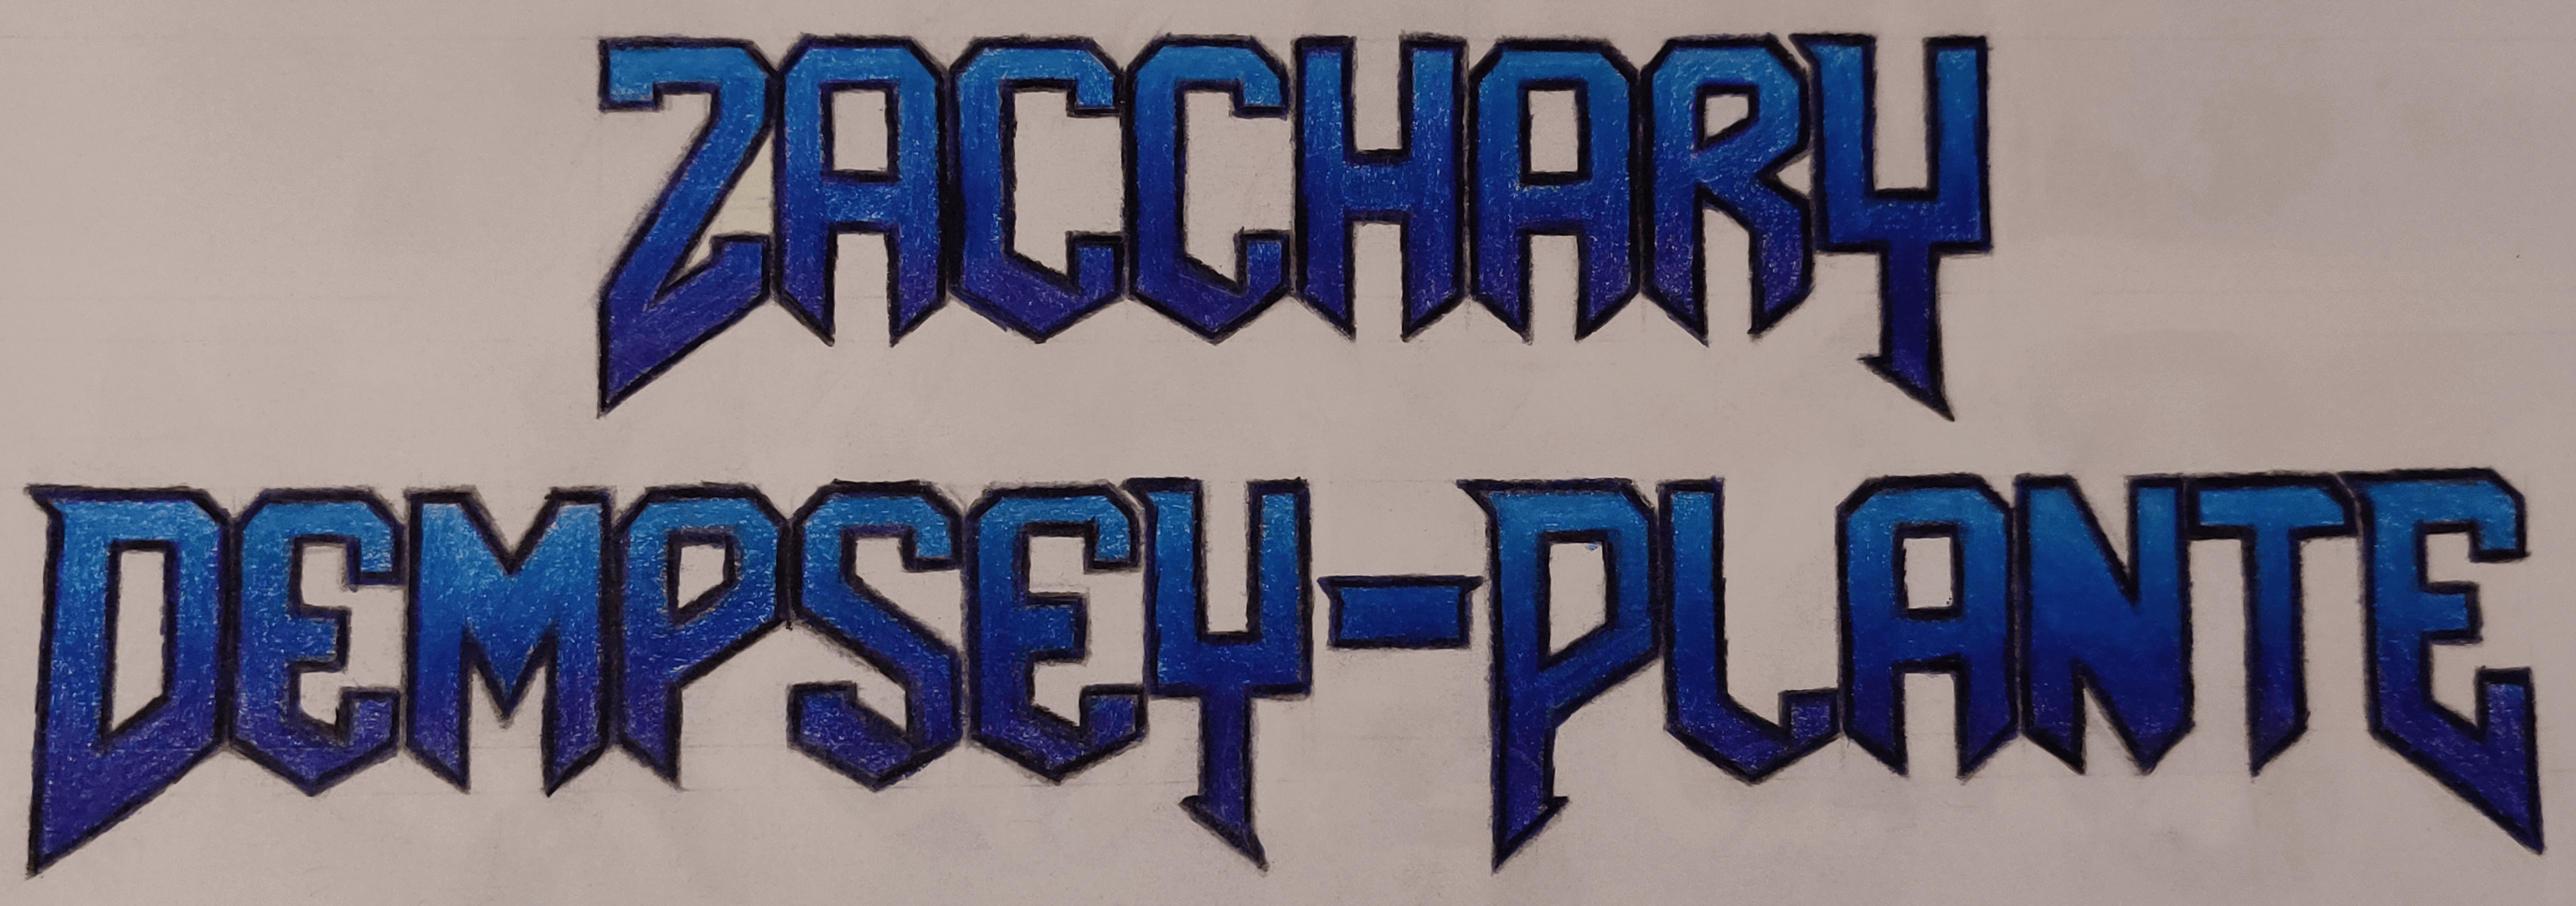 A typography drawing of my name in DOOM-styled font with a blue-to-purple (top-to-bottom) gradient.